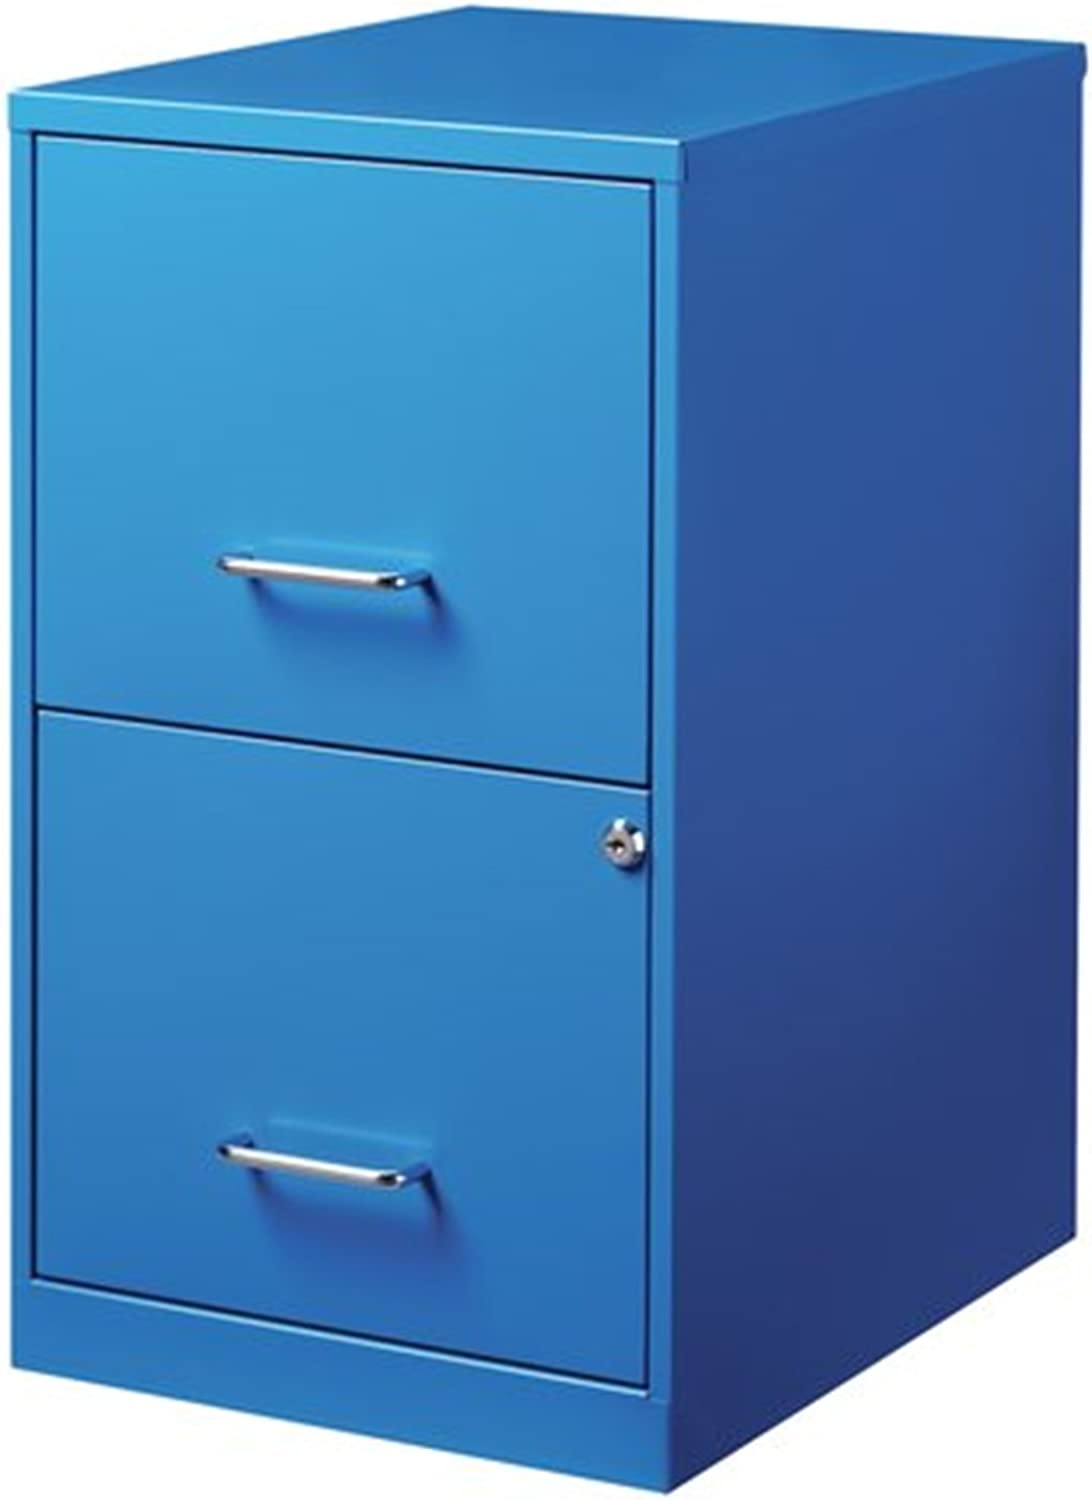 Varick Gallery Chaidez 2 Drawer greenical Filing Cabinet (bluee)